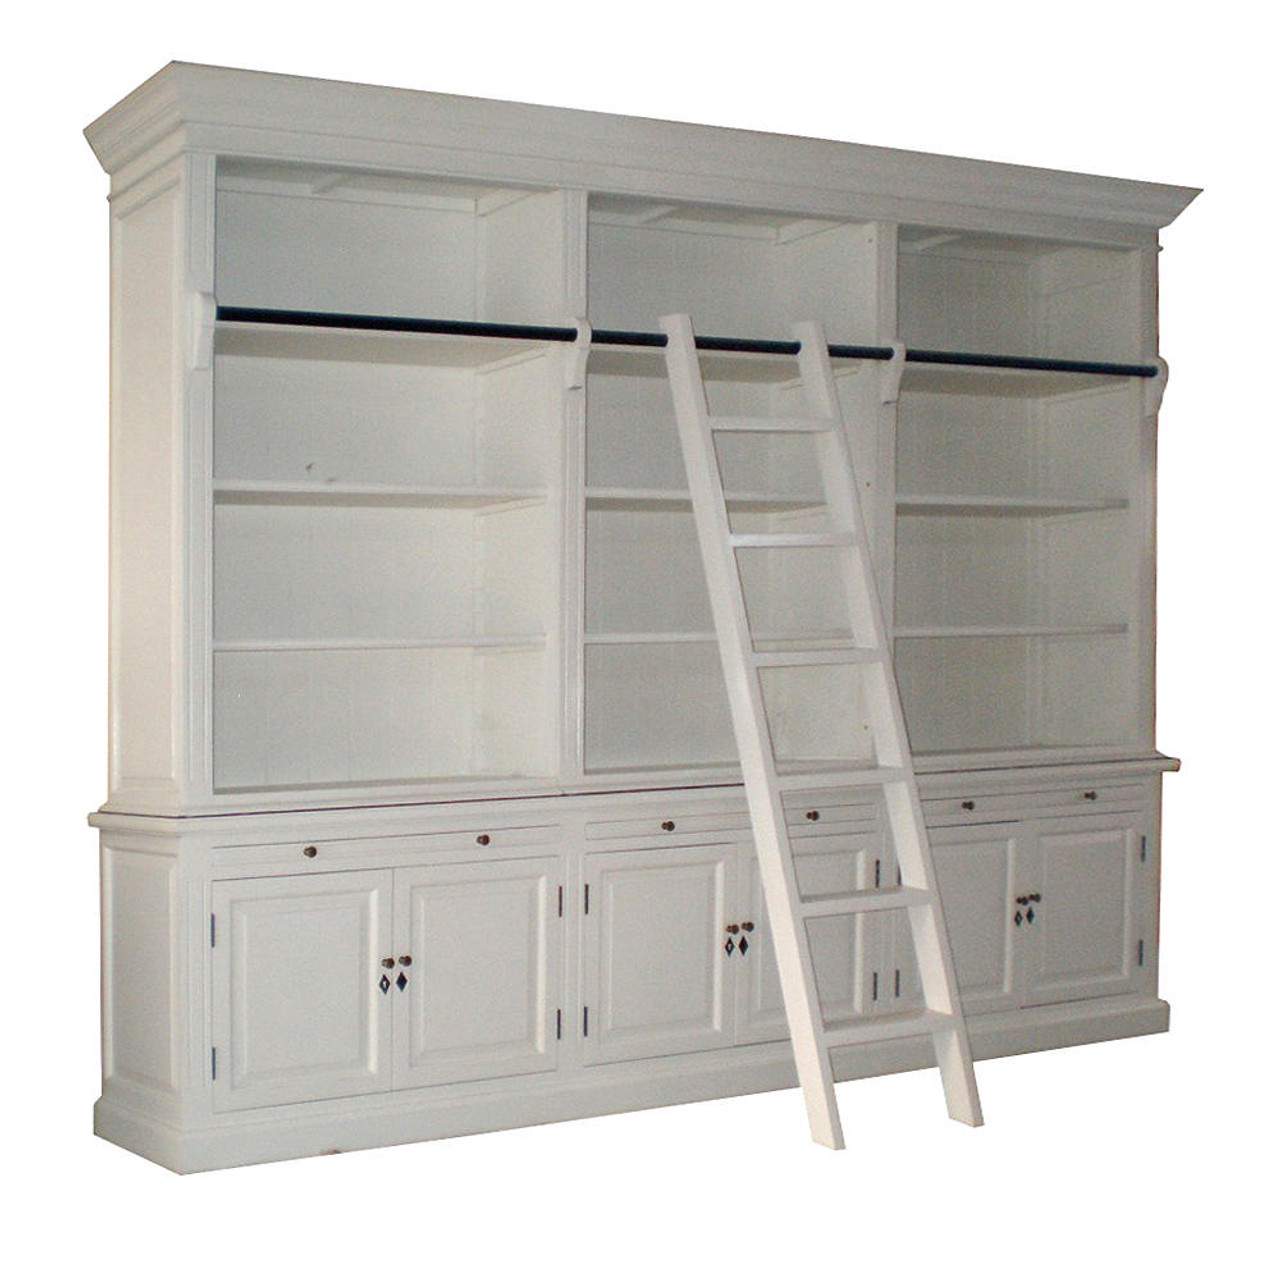 Harrington 3 Bay Library Bookcase White